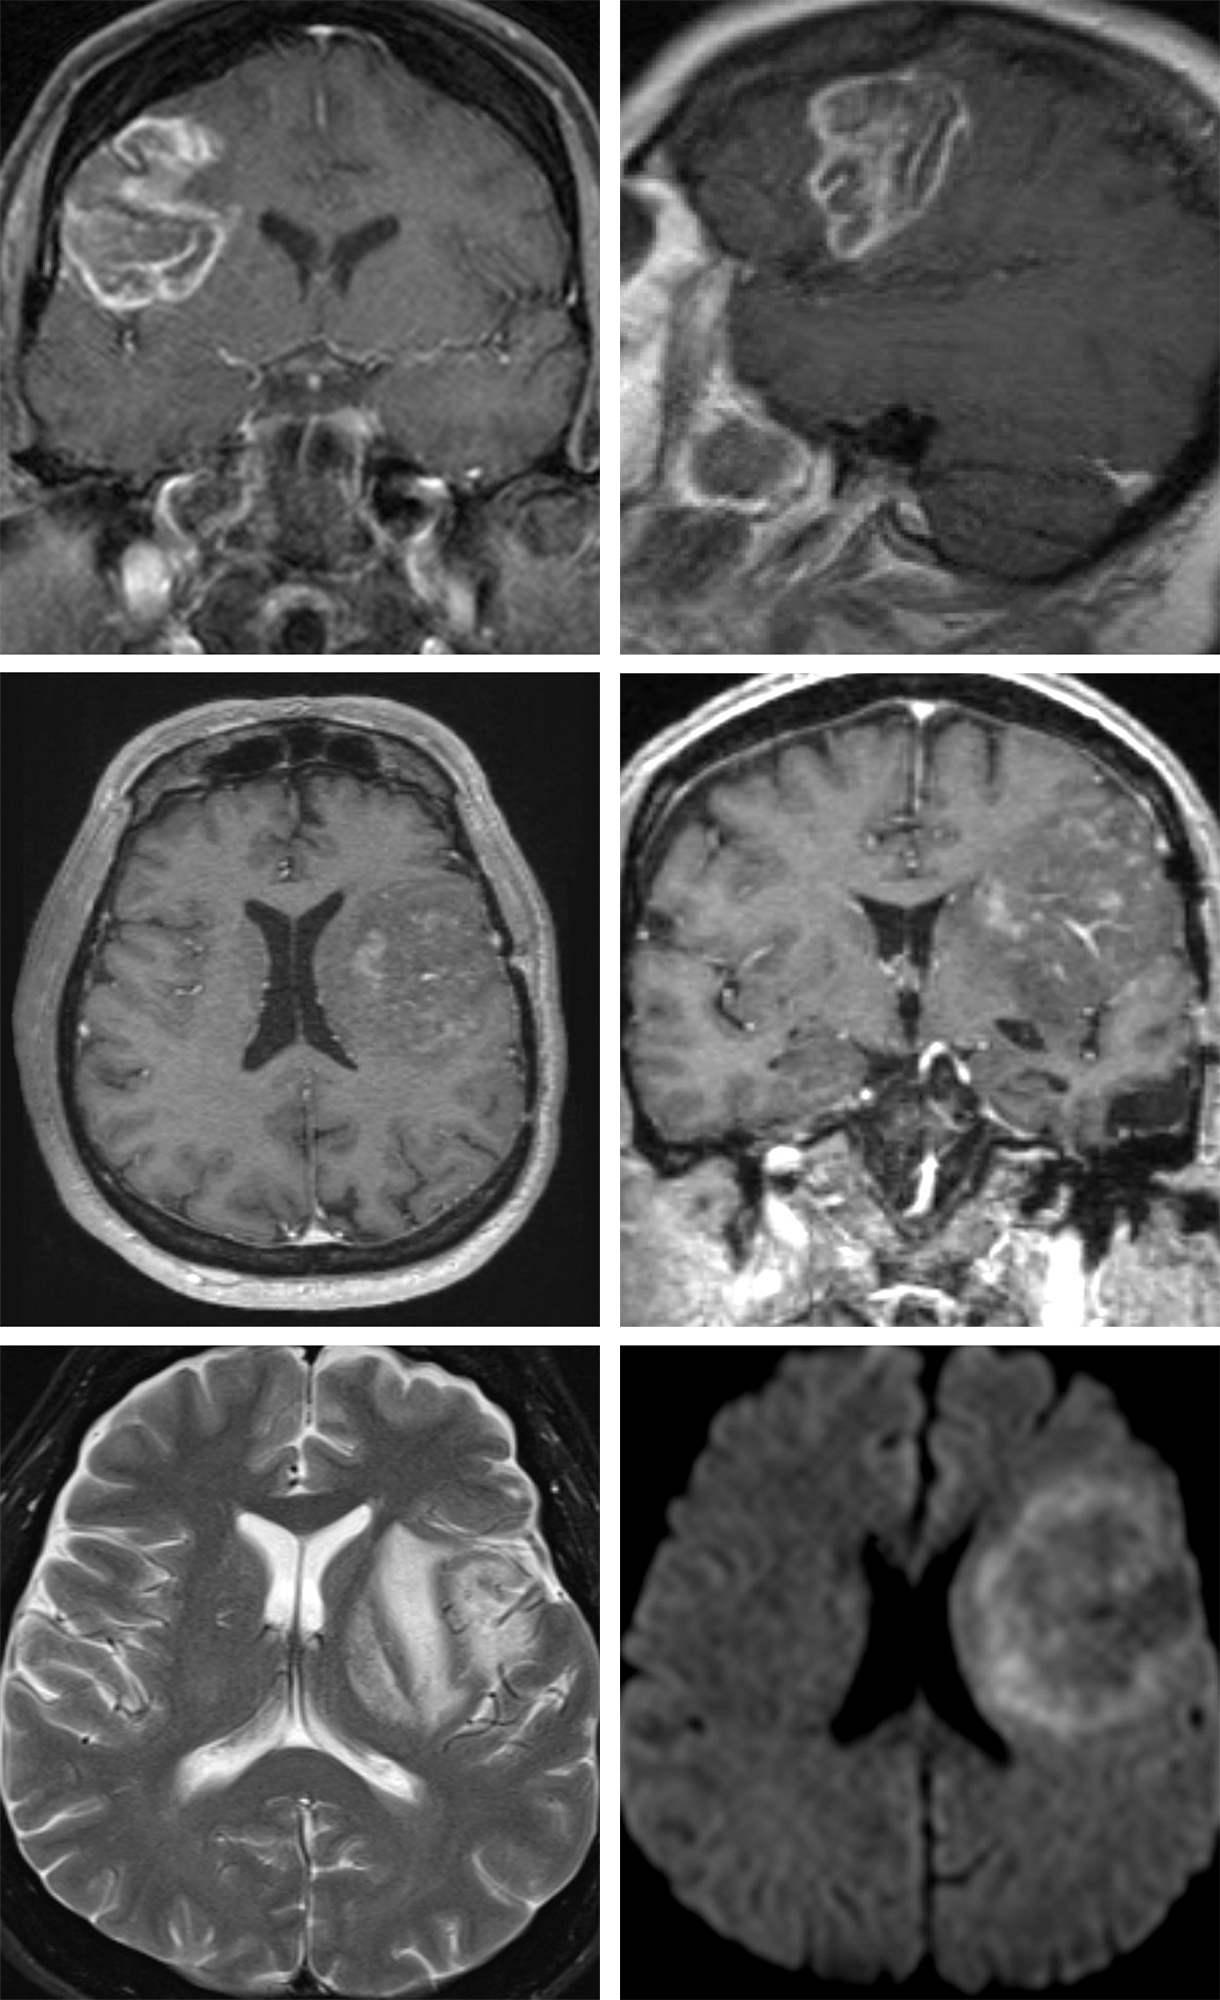 Figure 3: The images of the top row belong to a patient who suffered from a seizure. The MR enhanced images demonstrate gyral enhancement pattern compatible with acute infarction and not a neoplasm. The rest of the images in the subsequent rows belong to another patient with hemiparesis who was thought to have an insular tumor. A careful review of these images advances the suspicion of an infarct as the T2 hyperintensity crosses the striatum (left lower image); this feature is not consistent with tumorous masses that respect the medial gray matter structures. Diffusion imaging (right lower photo) confirms the findings of infarction and avoids unnecessary operative intervention.